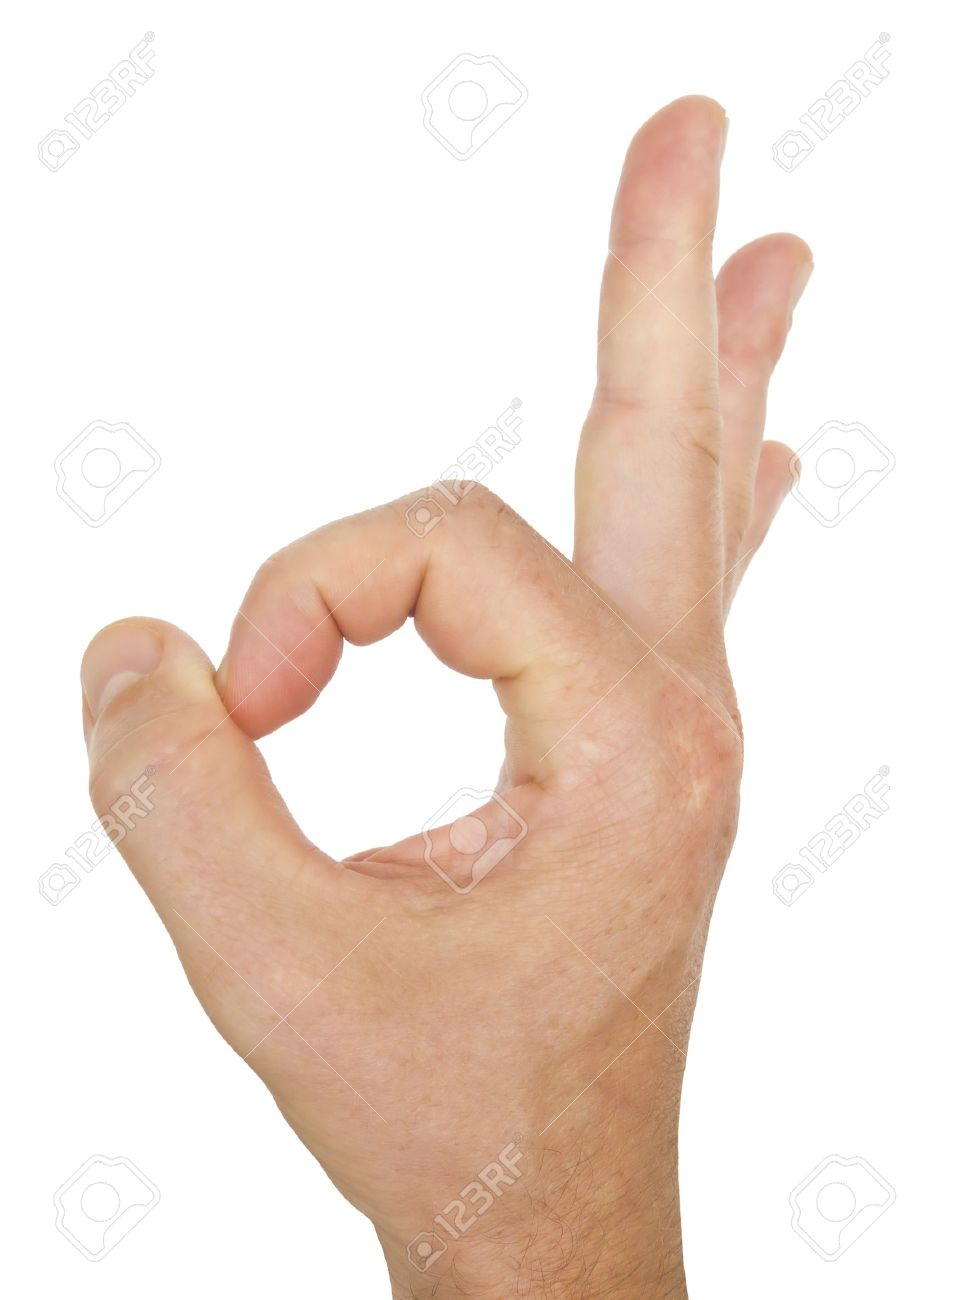 Male hand perfect gesture isolated on white background Stock Photo - 10871183